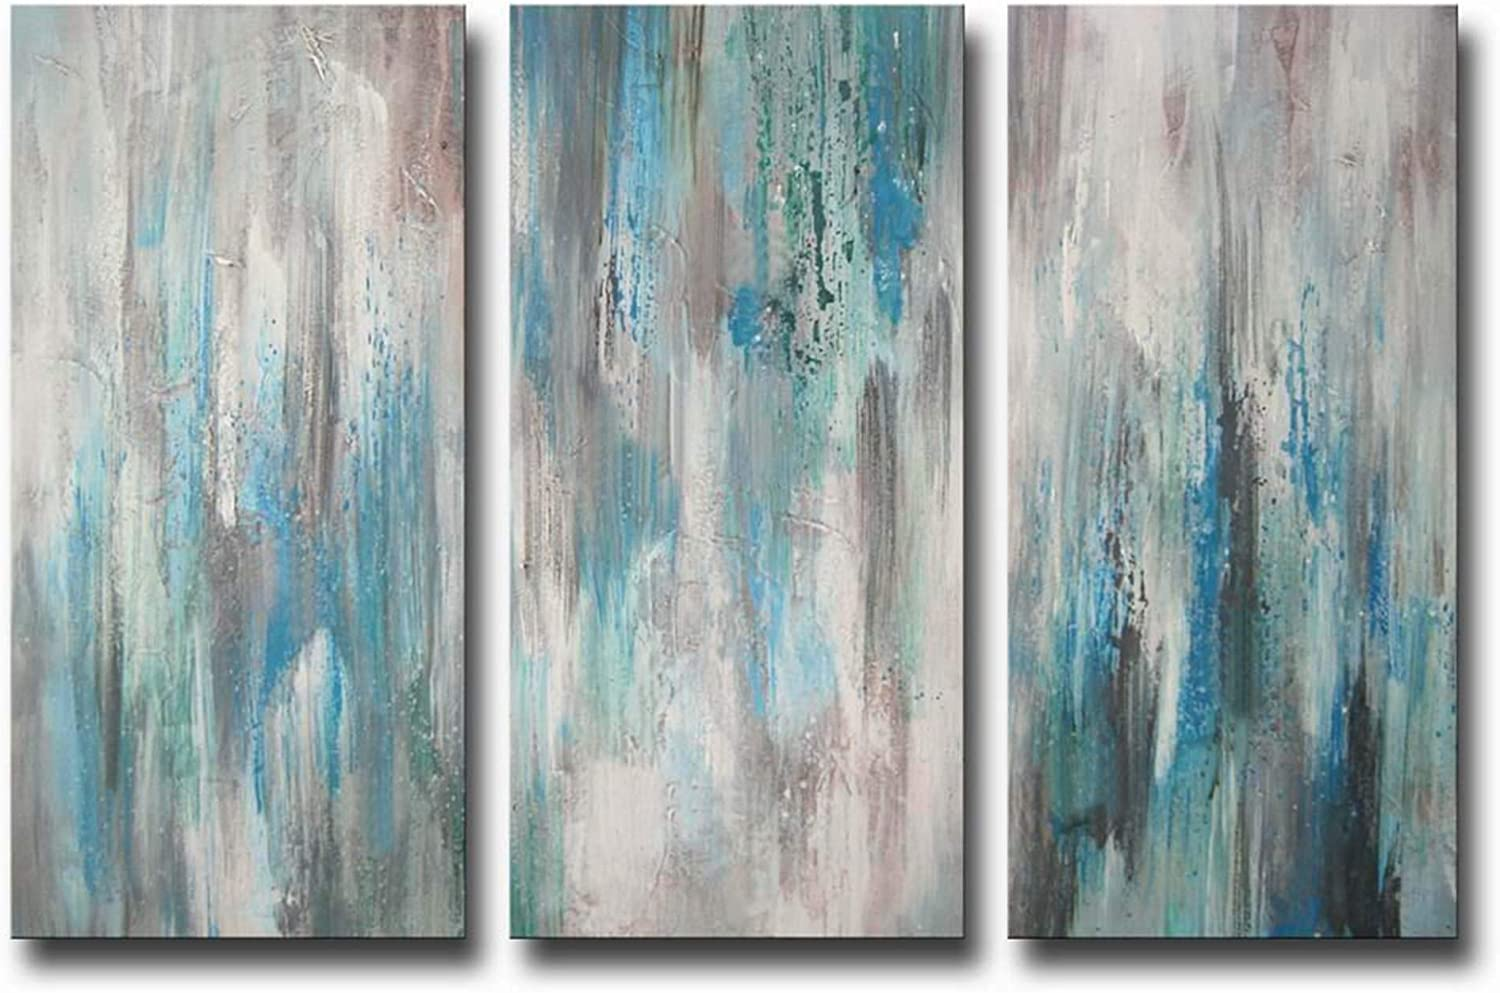 B0123BC9D4 ARTLAND Hand-Painted 'Sea of Clarity' Oil Painting Gallery-Wrapped Canvas Art Set 3-Piece 71xt6trxPEL